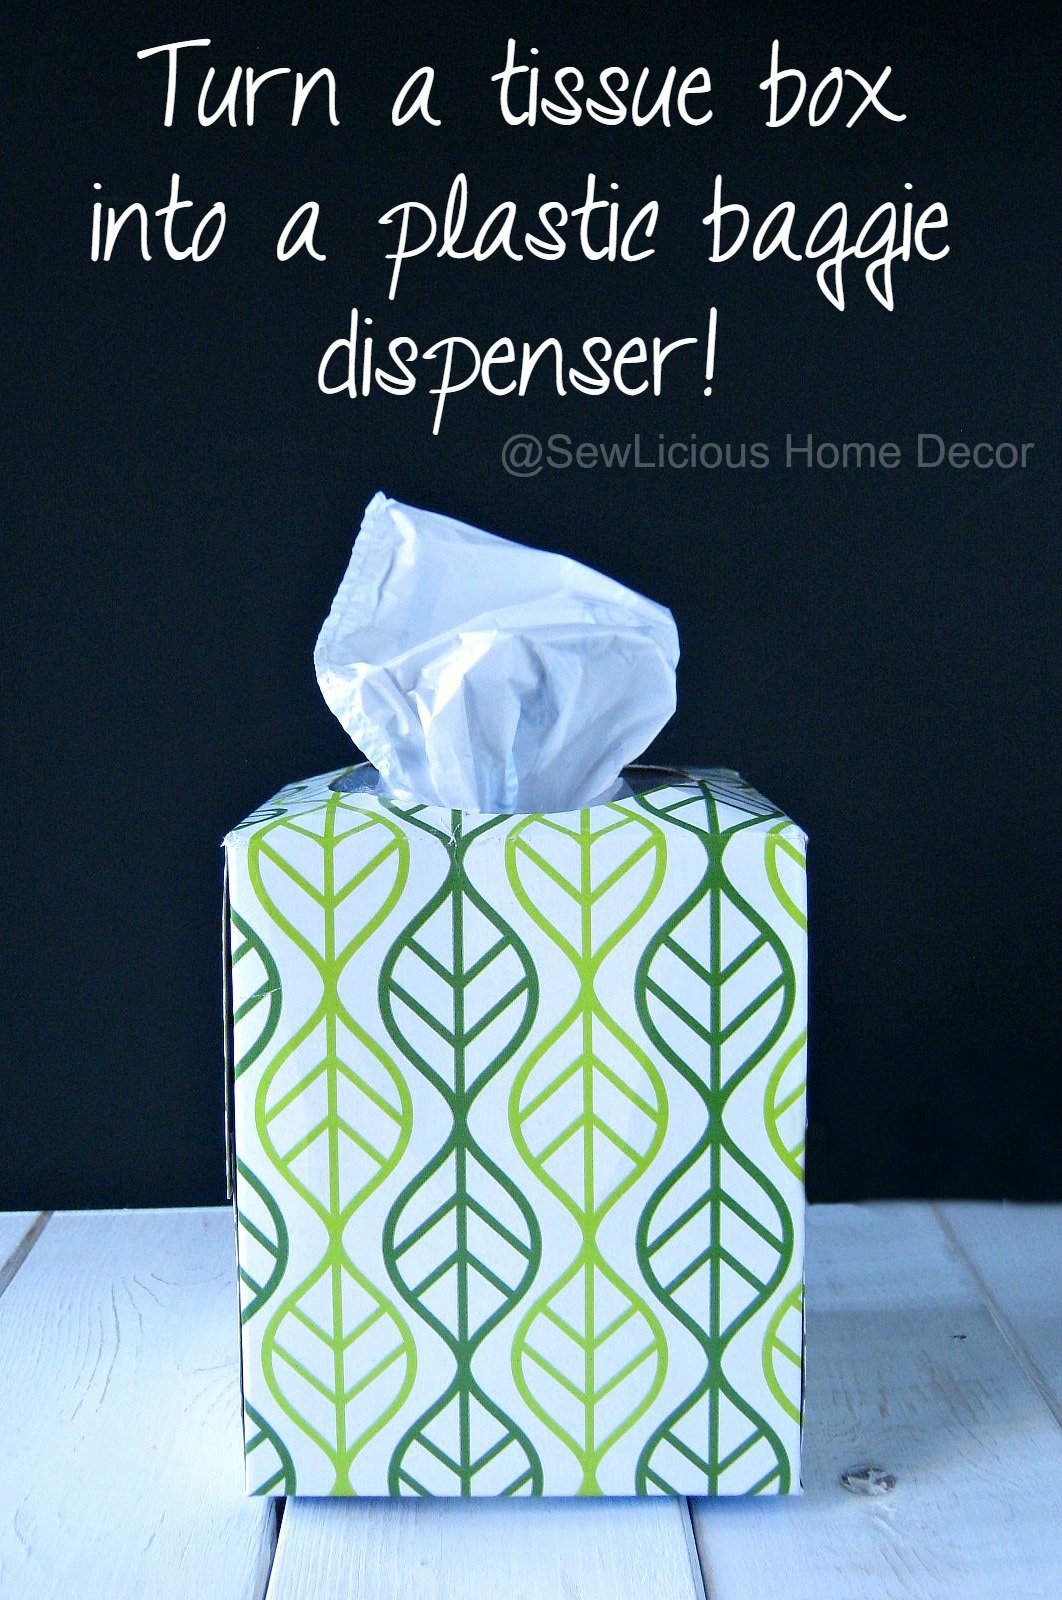 Turn a pretty kleenex box into a plastic baggie dispenser sewlicioushomedecor.com